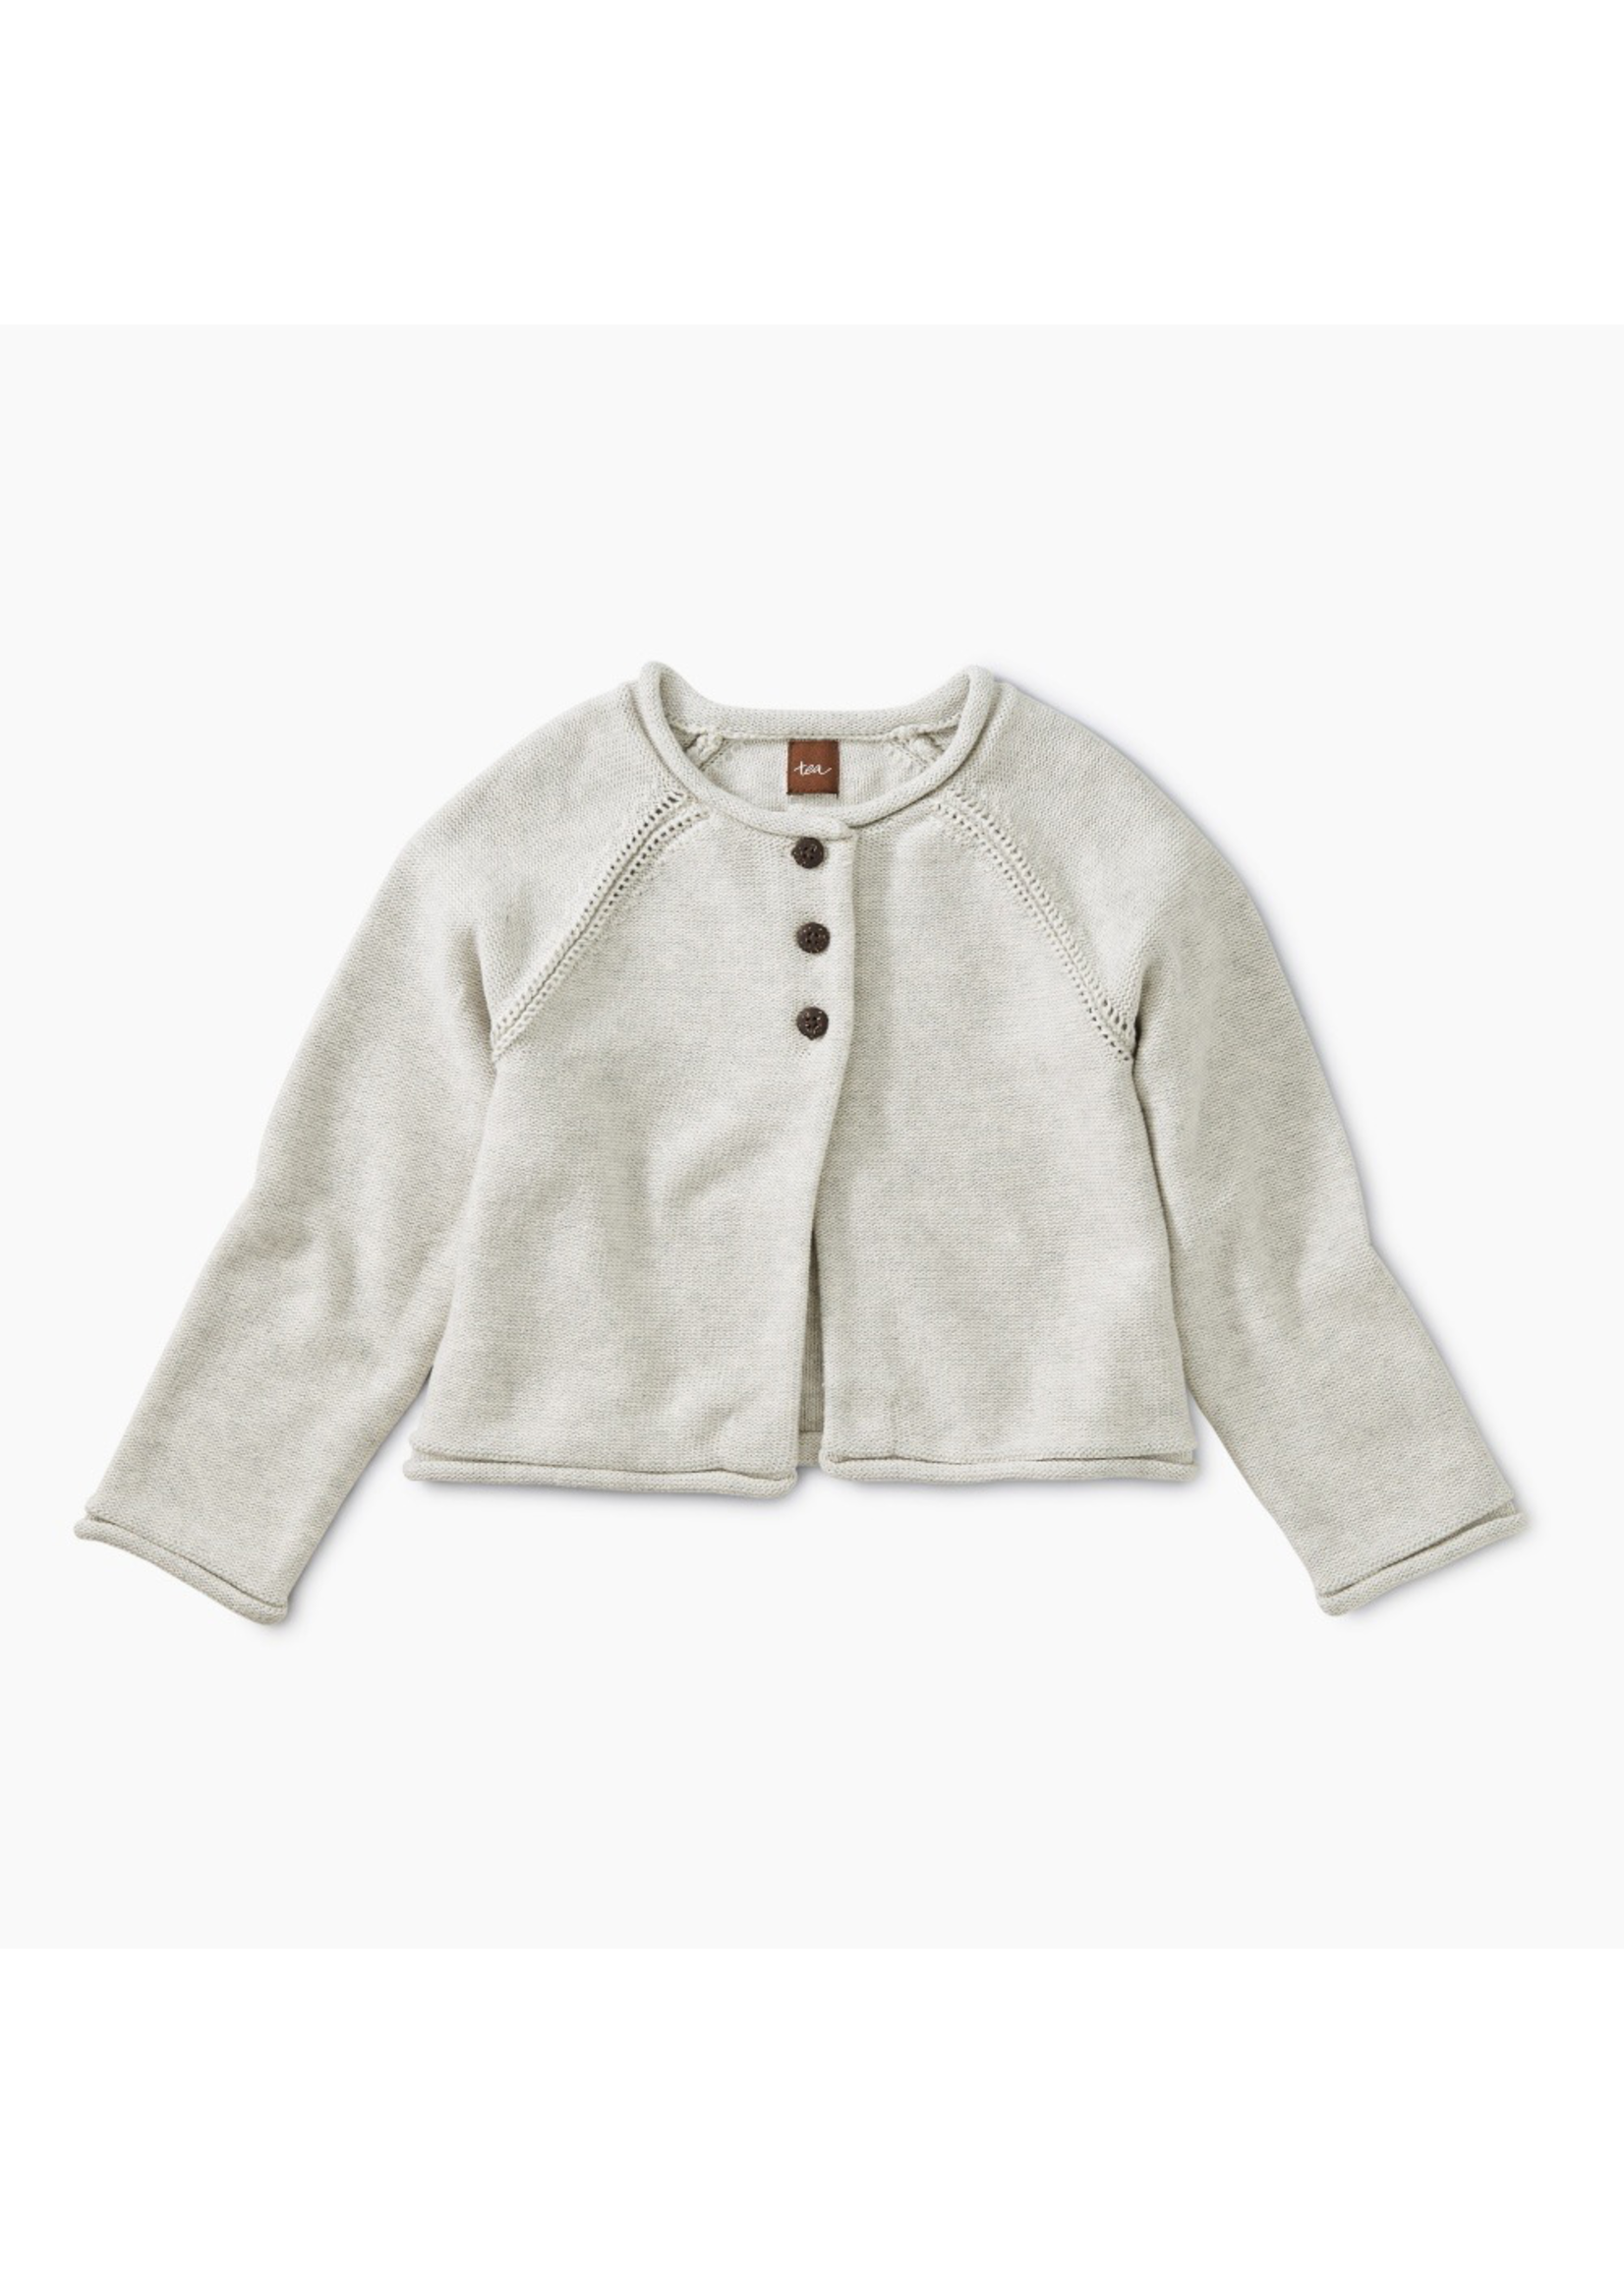 Tea Collection Tea Collection, Solid Raglan Sweater Cardigan for Girl